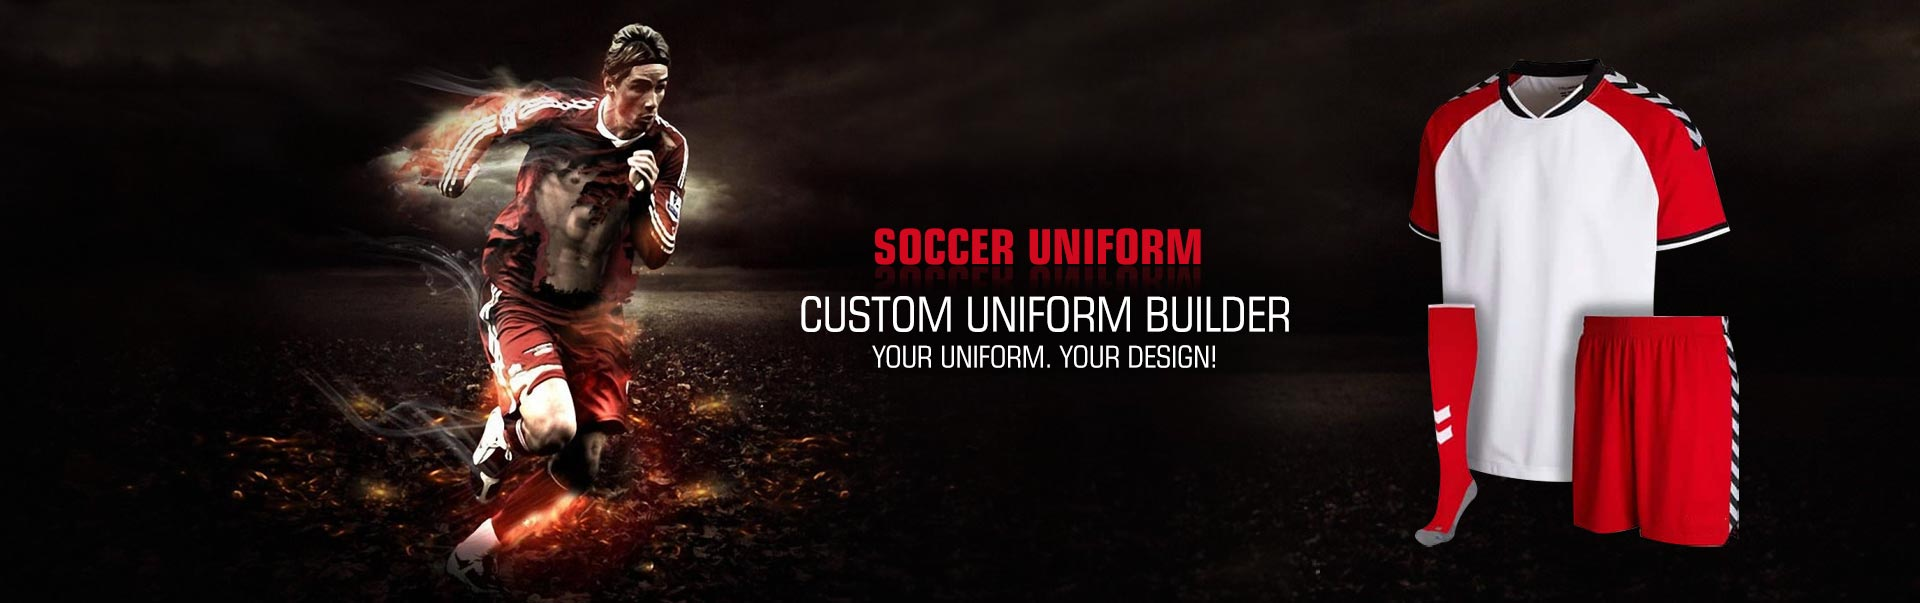 Soccer Uniform Wholesaler, Suppliers in Sacramento